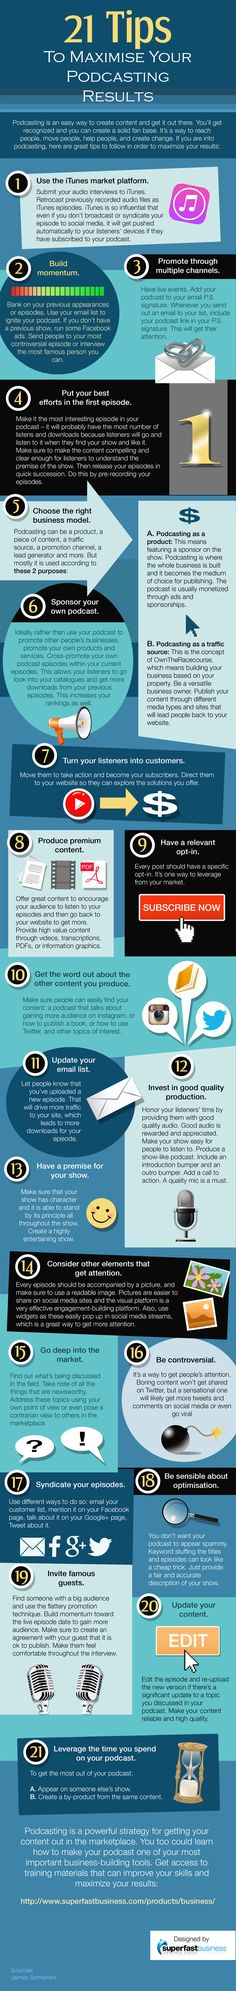 21-tips-to-maximise-your-podcasting-results infographic from James Schramko of SuperFastBusiness.com